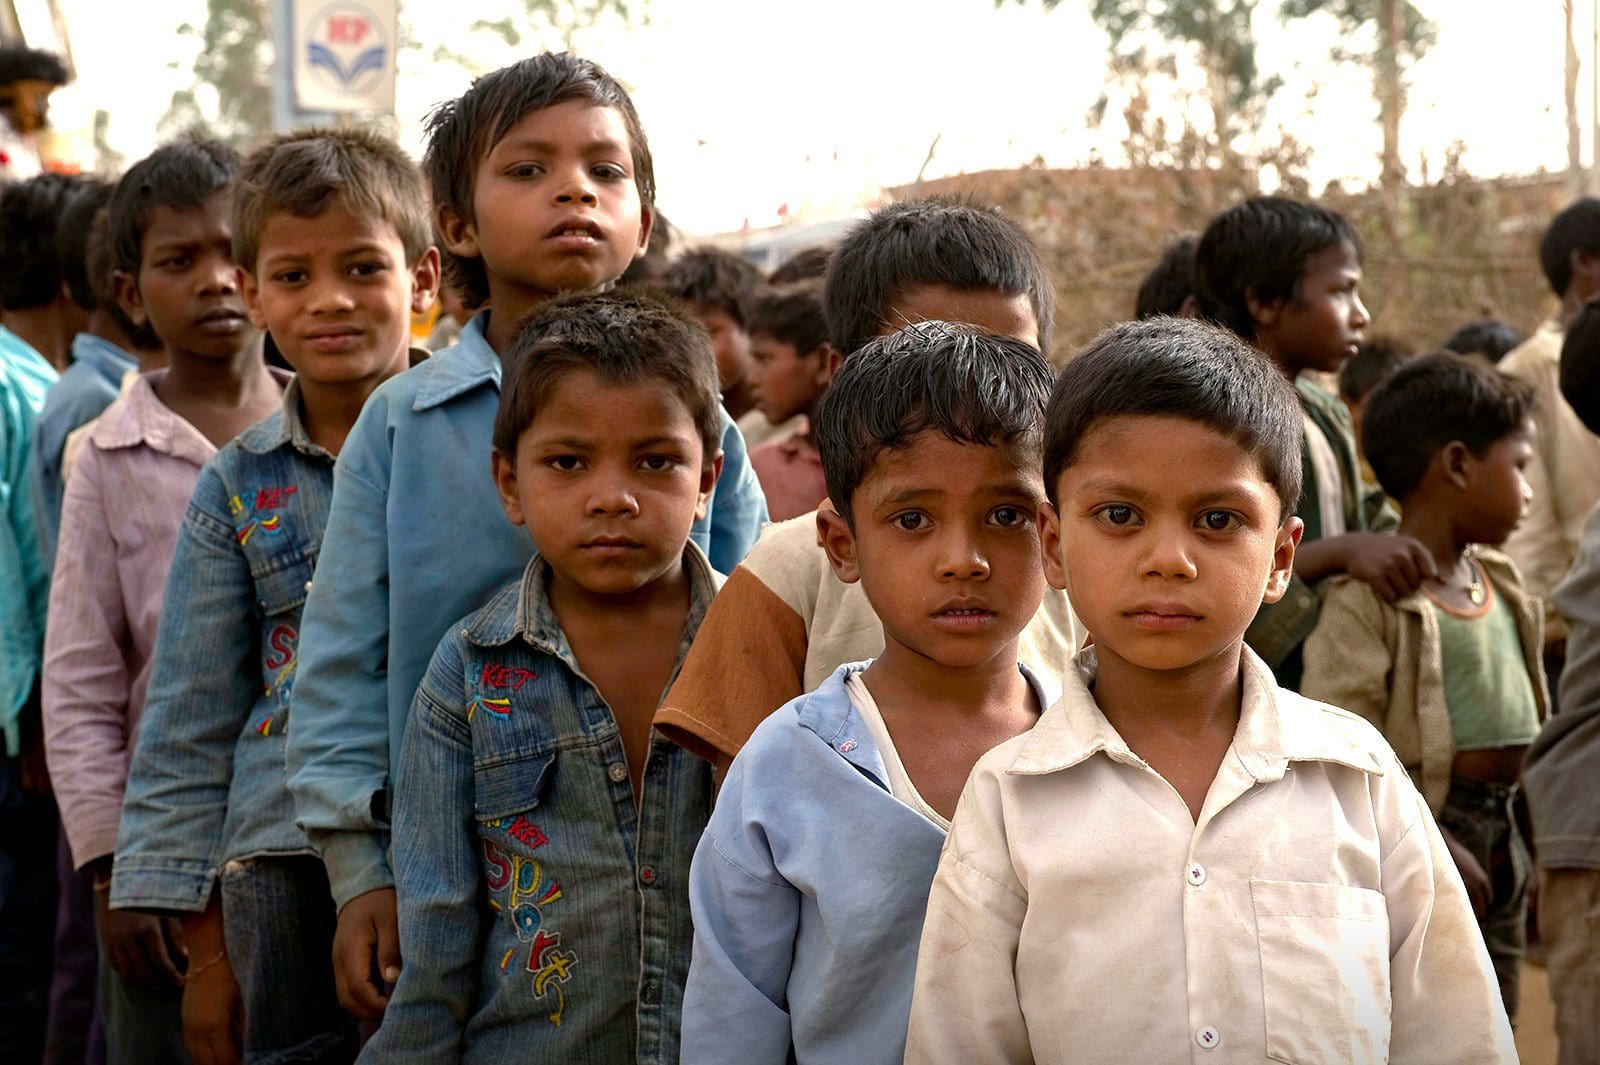 Children standing in line